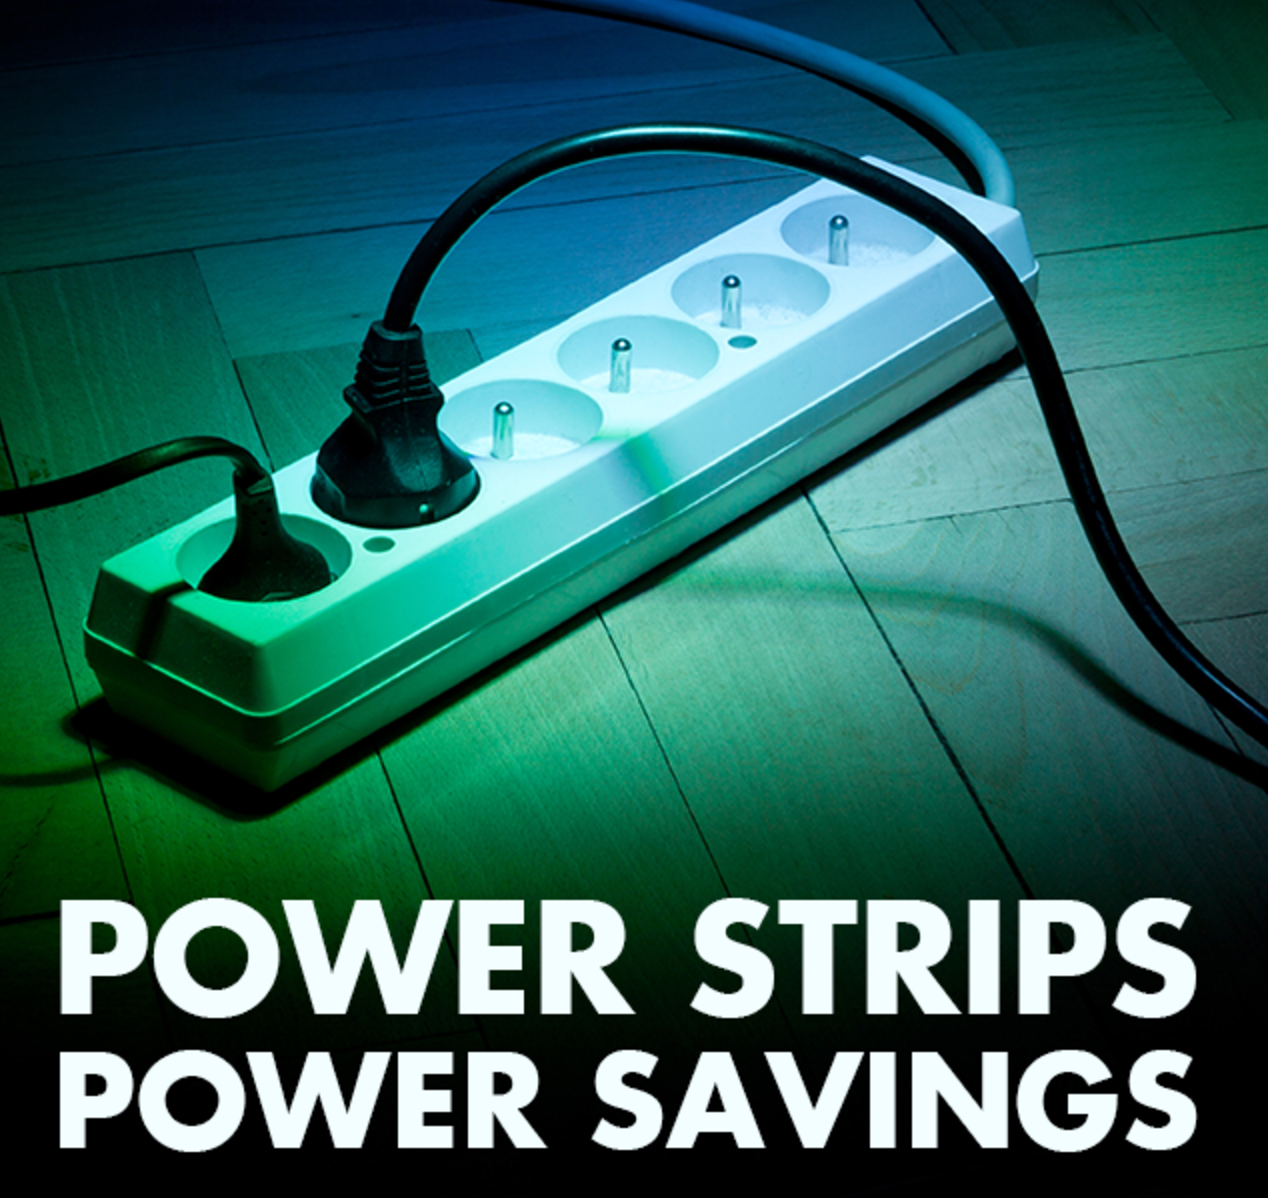 Plug Your Home Electrics Into A Power Strip And Remember To Turn It Off When Not In Use Powersavers Powe Electric House Solar Panel Installation Electricity